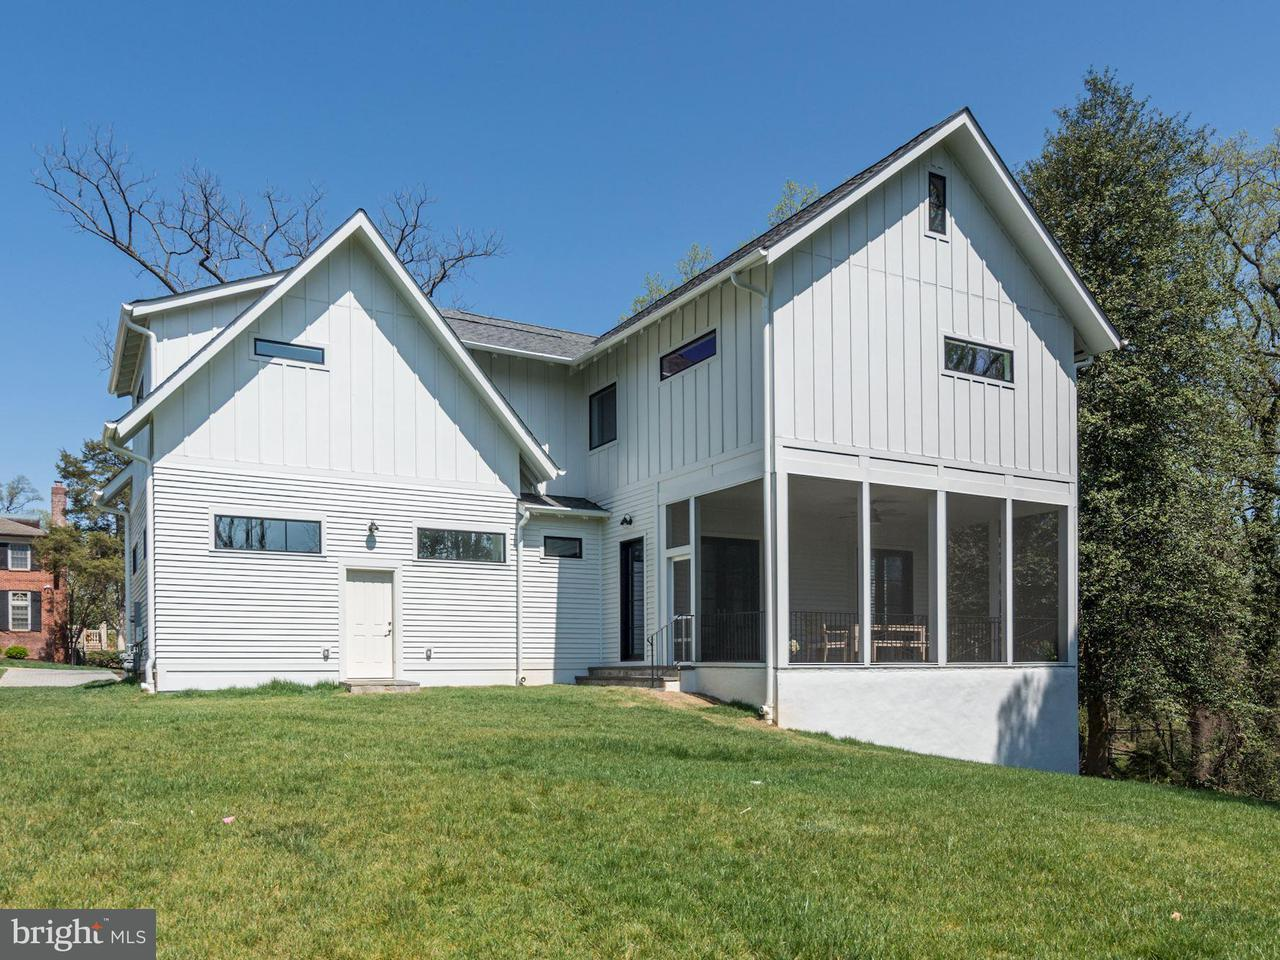 Single Family Home for Sale at 4664 25th St N 4664 25th St N Arlington, Virginia 22207 United States